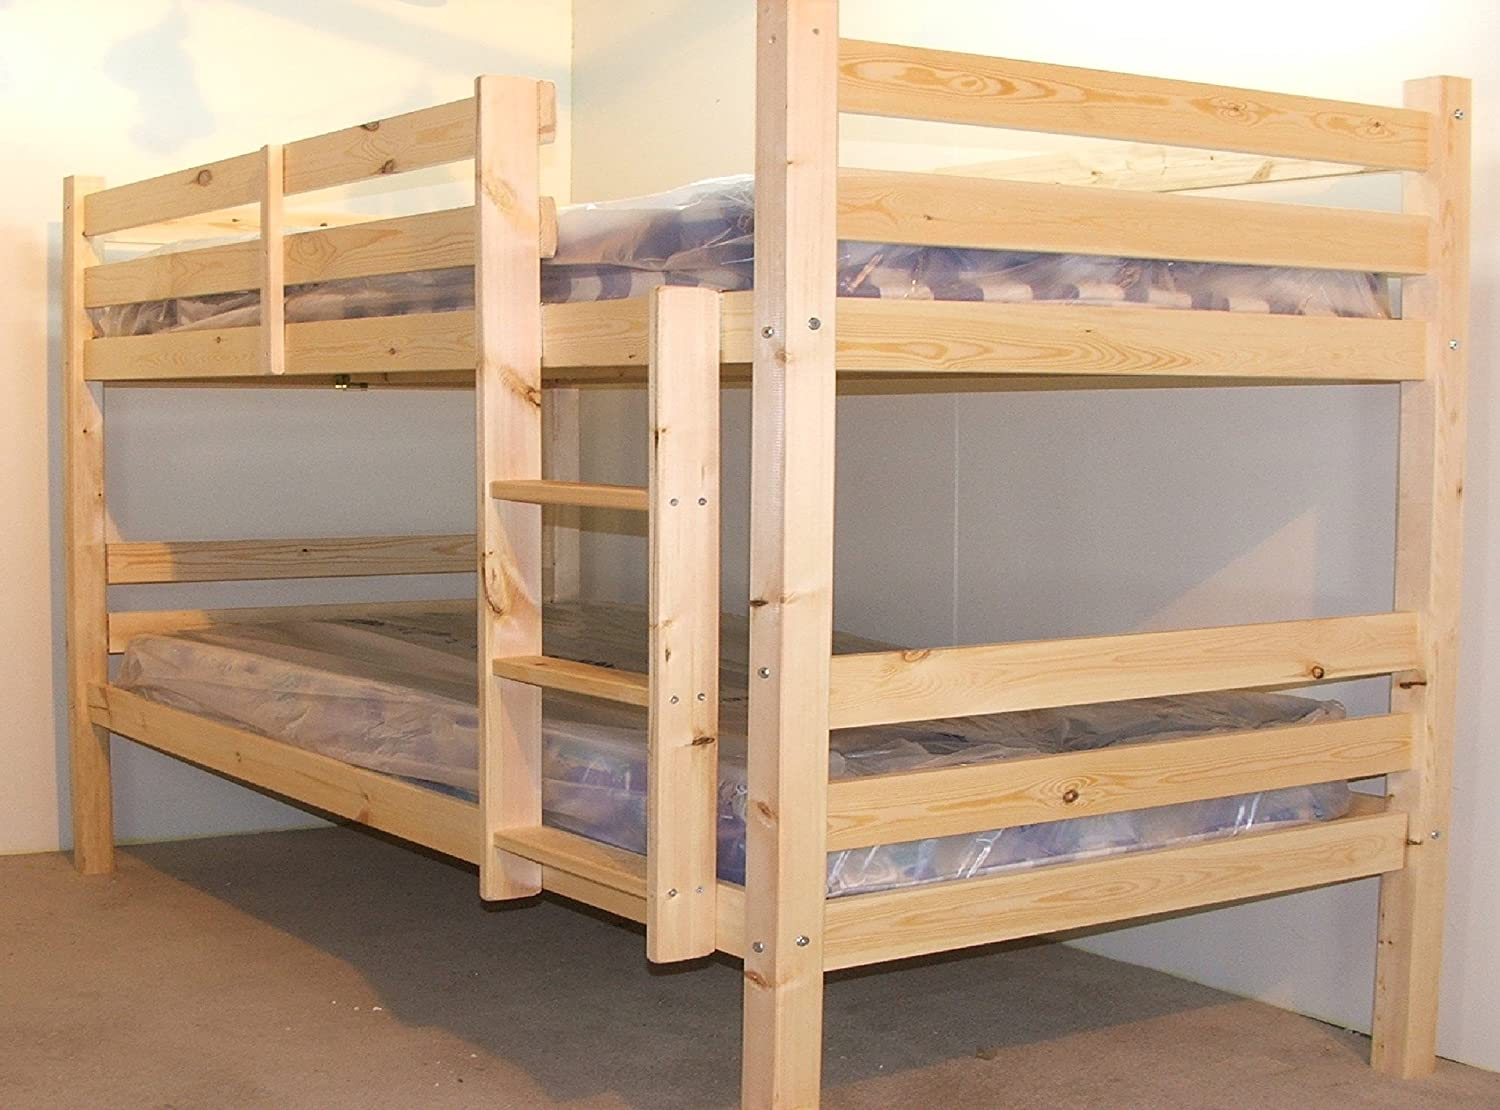 Charmant DOUBLE Bunkbed   4ft 6 TWIN Bunk Bed   VERY STRONG BUNK!   Can Be Used By  Adults   Includes 2x 15cm Thick Sprung Mattresses: Amazon.co.uk: Kitchen U0026  Home